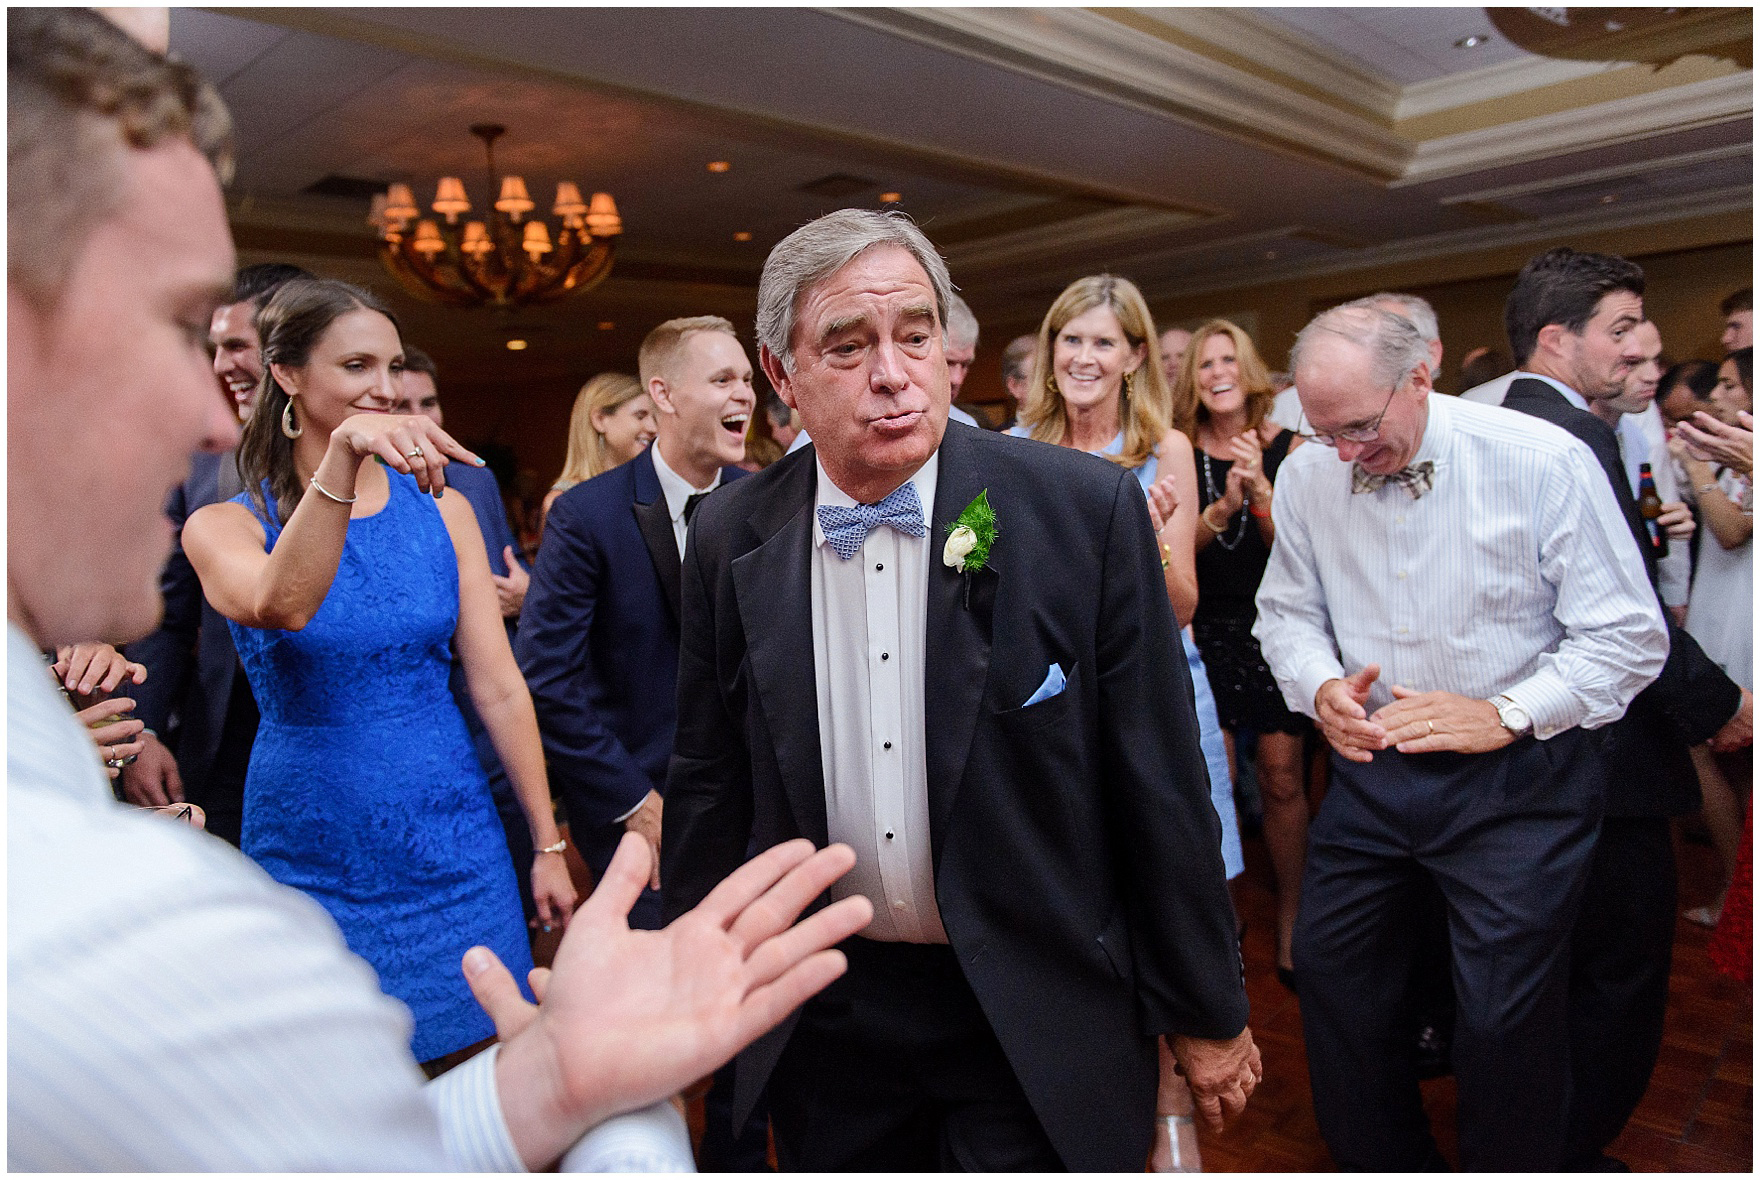 Guests dance at a Butterfield Country Club wedding.